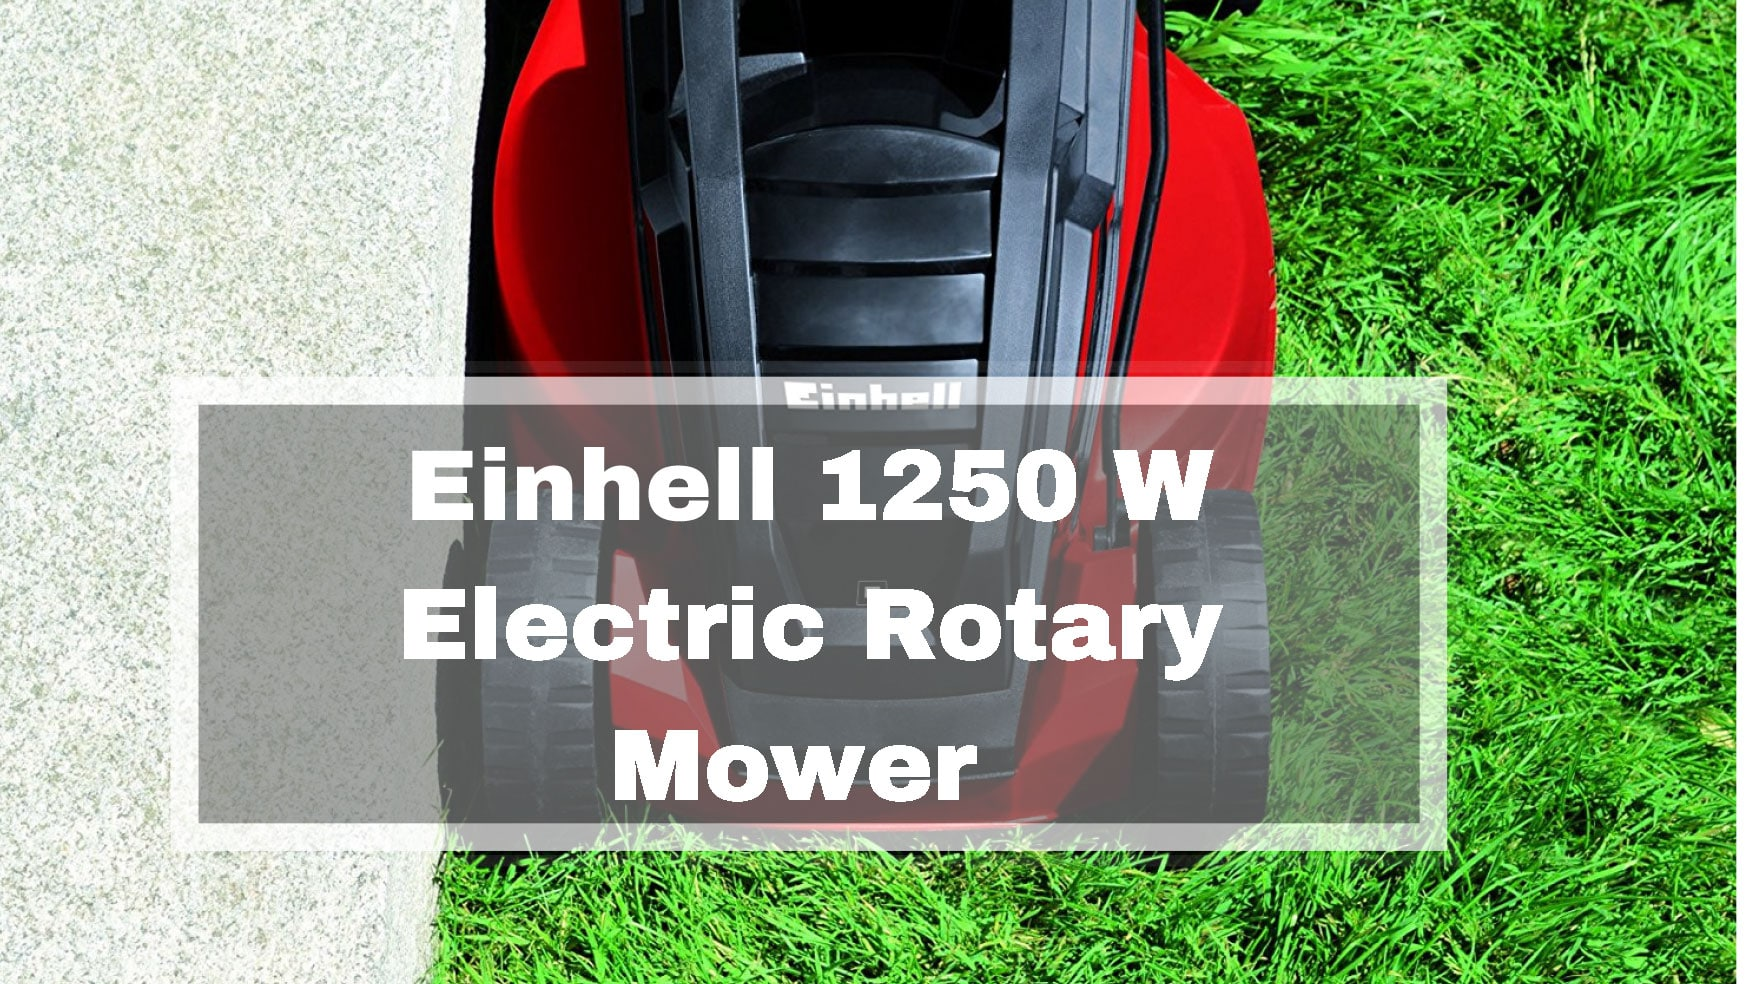 Einhell 1250 W Electric Rotary Mower